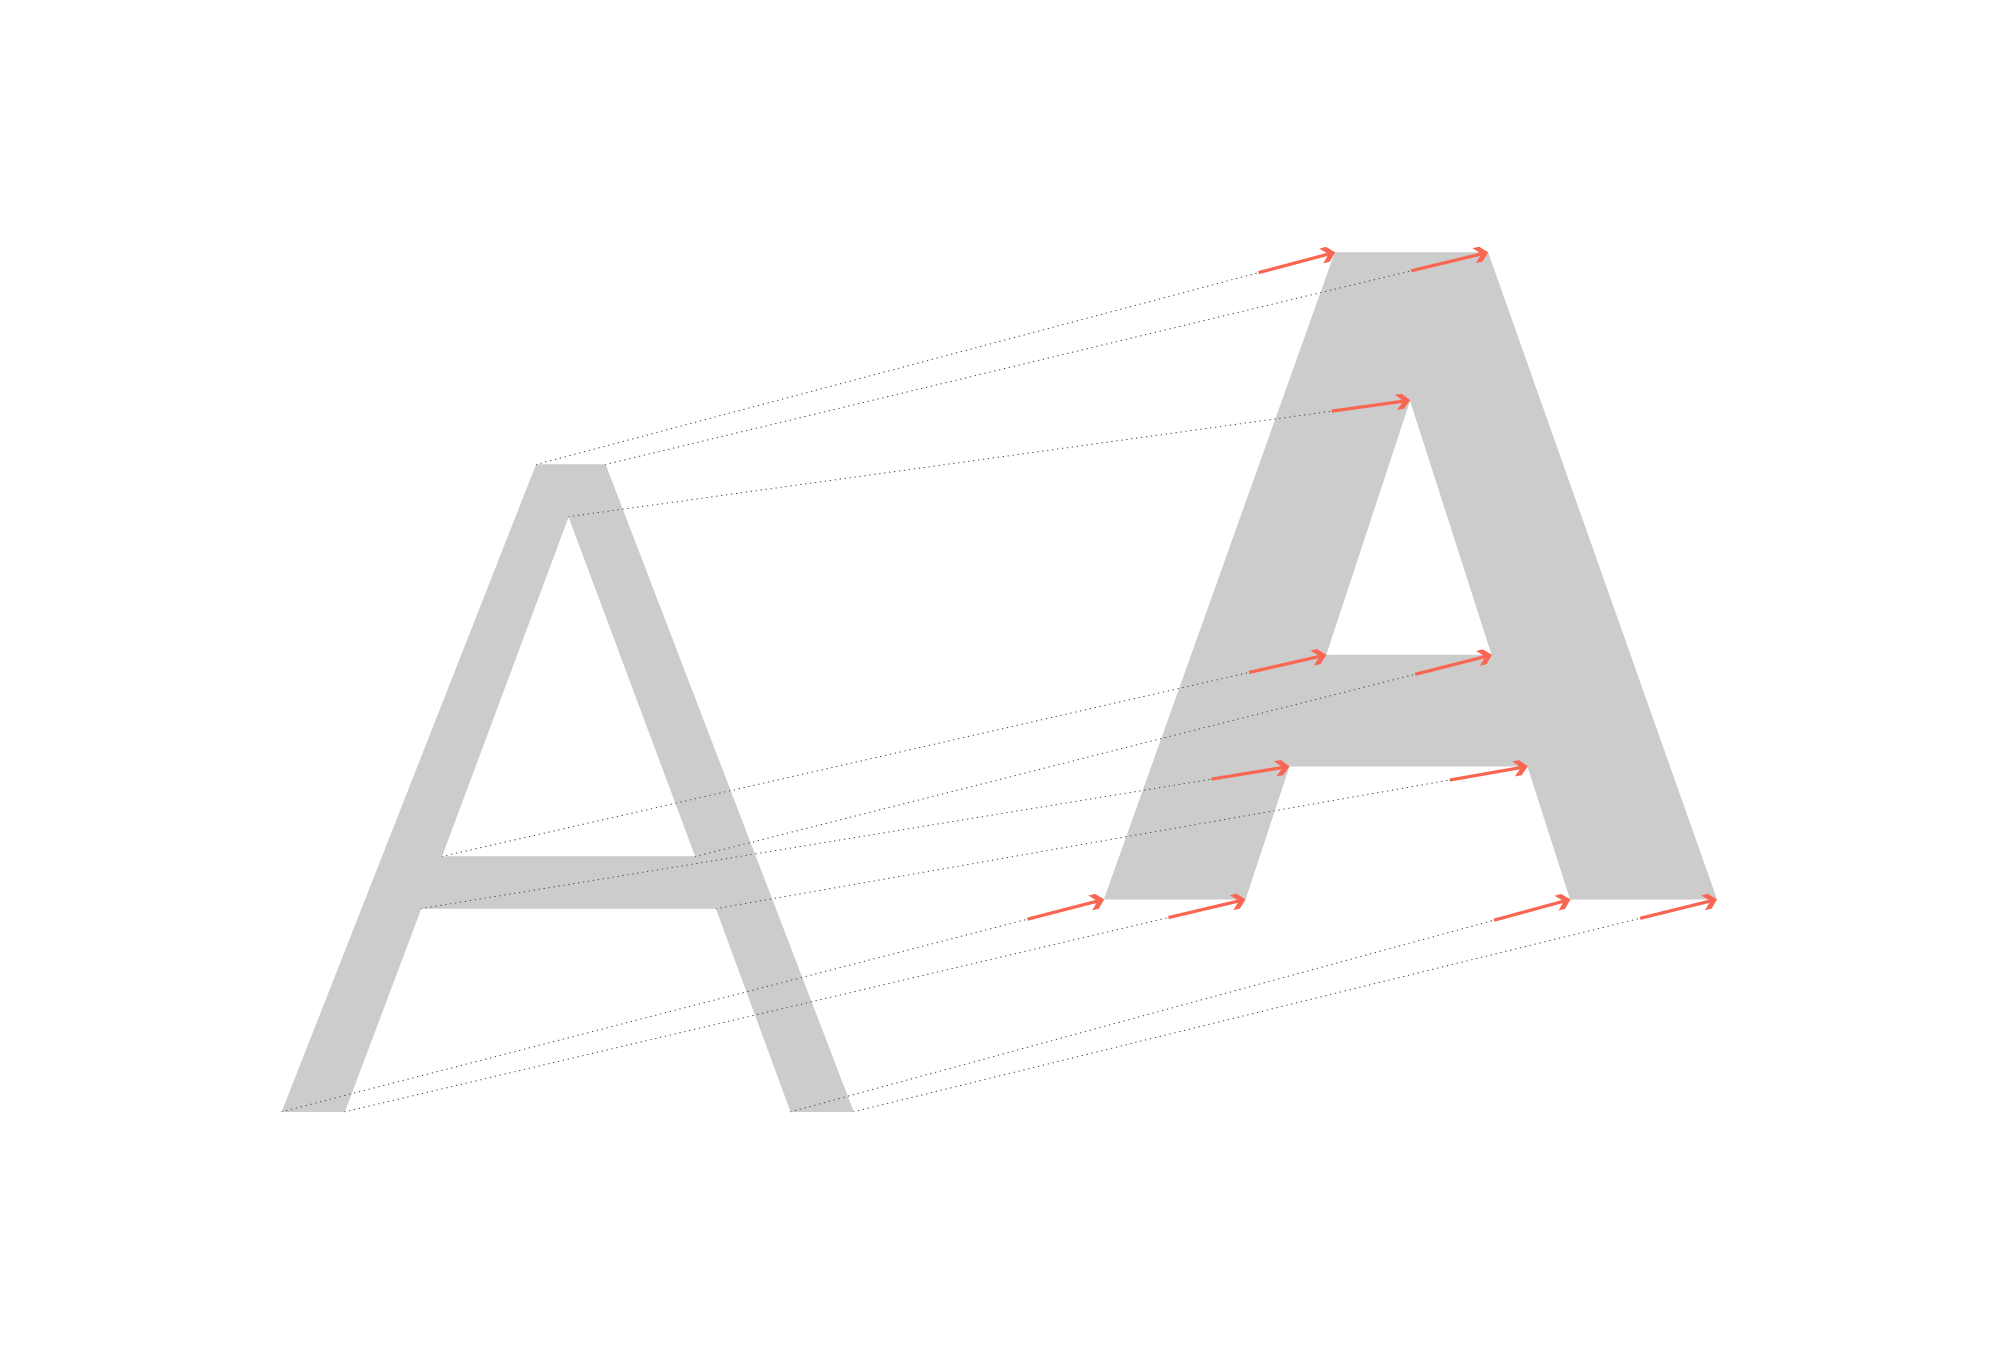 new-font-technologies-aa-hd-large-opt